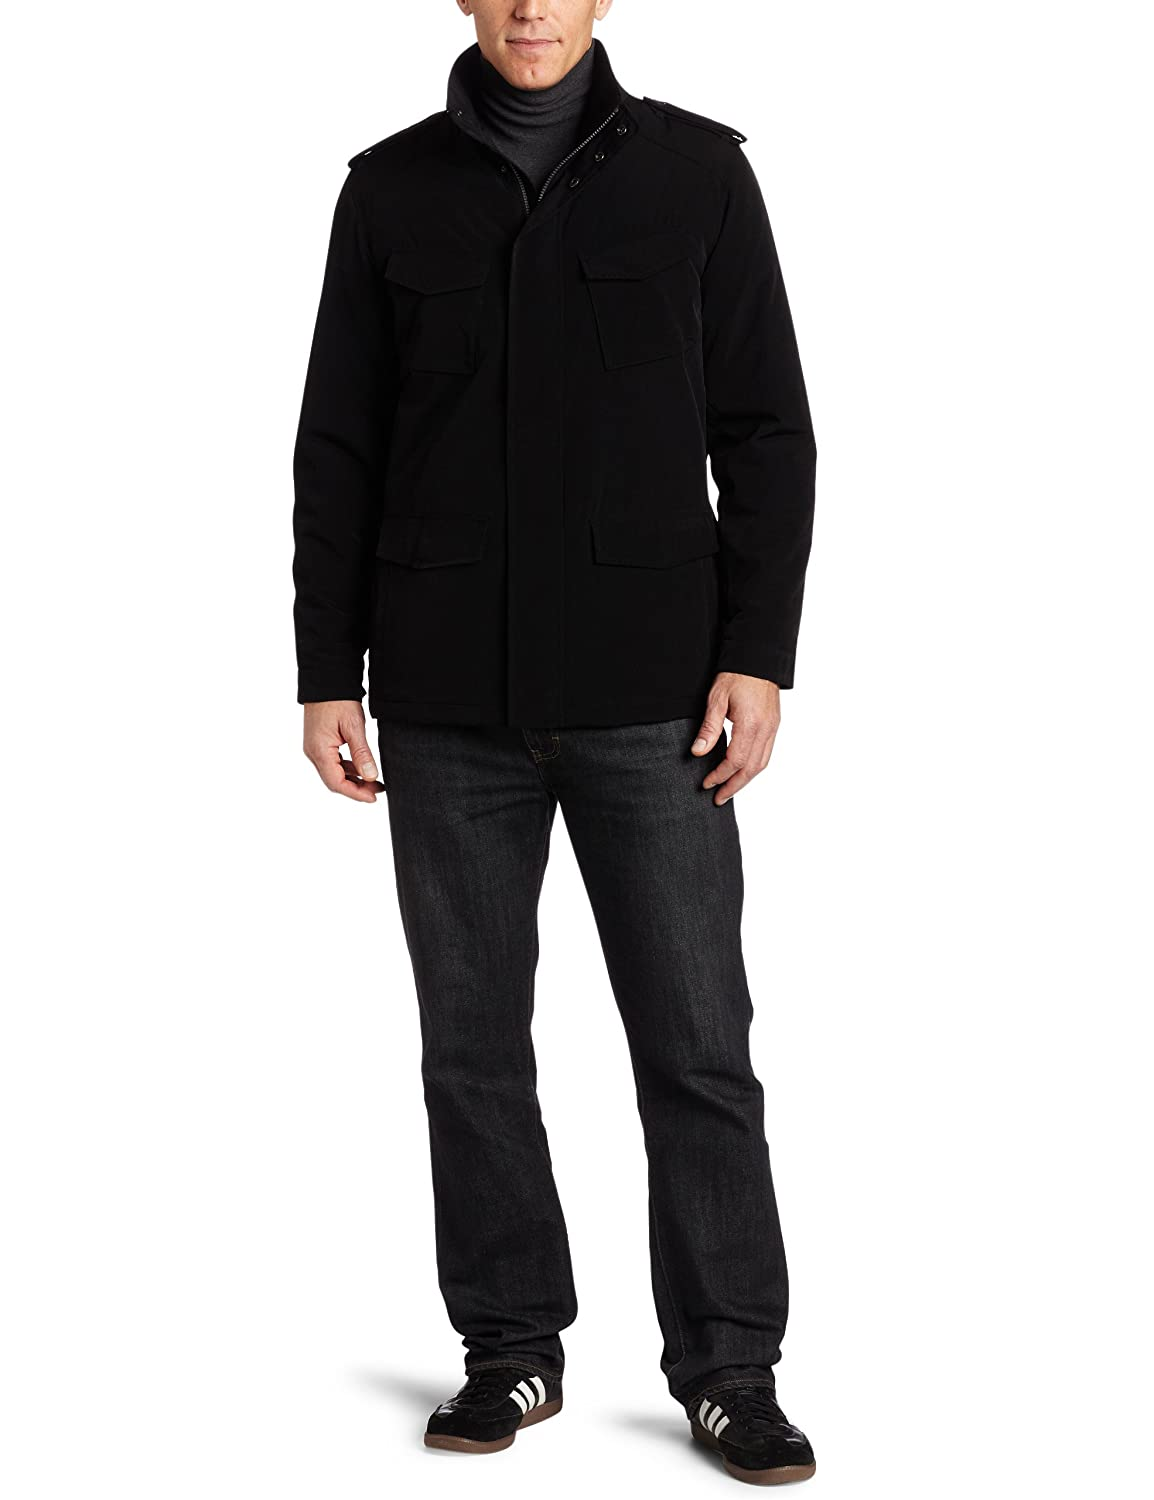 Perry Ellis Portfolio Men's Polytech Military Jacket, Black, Large $32.96